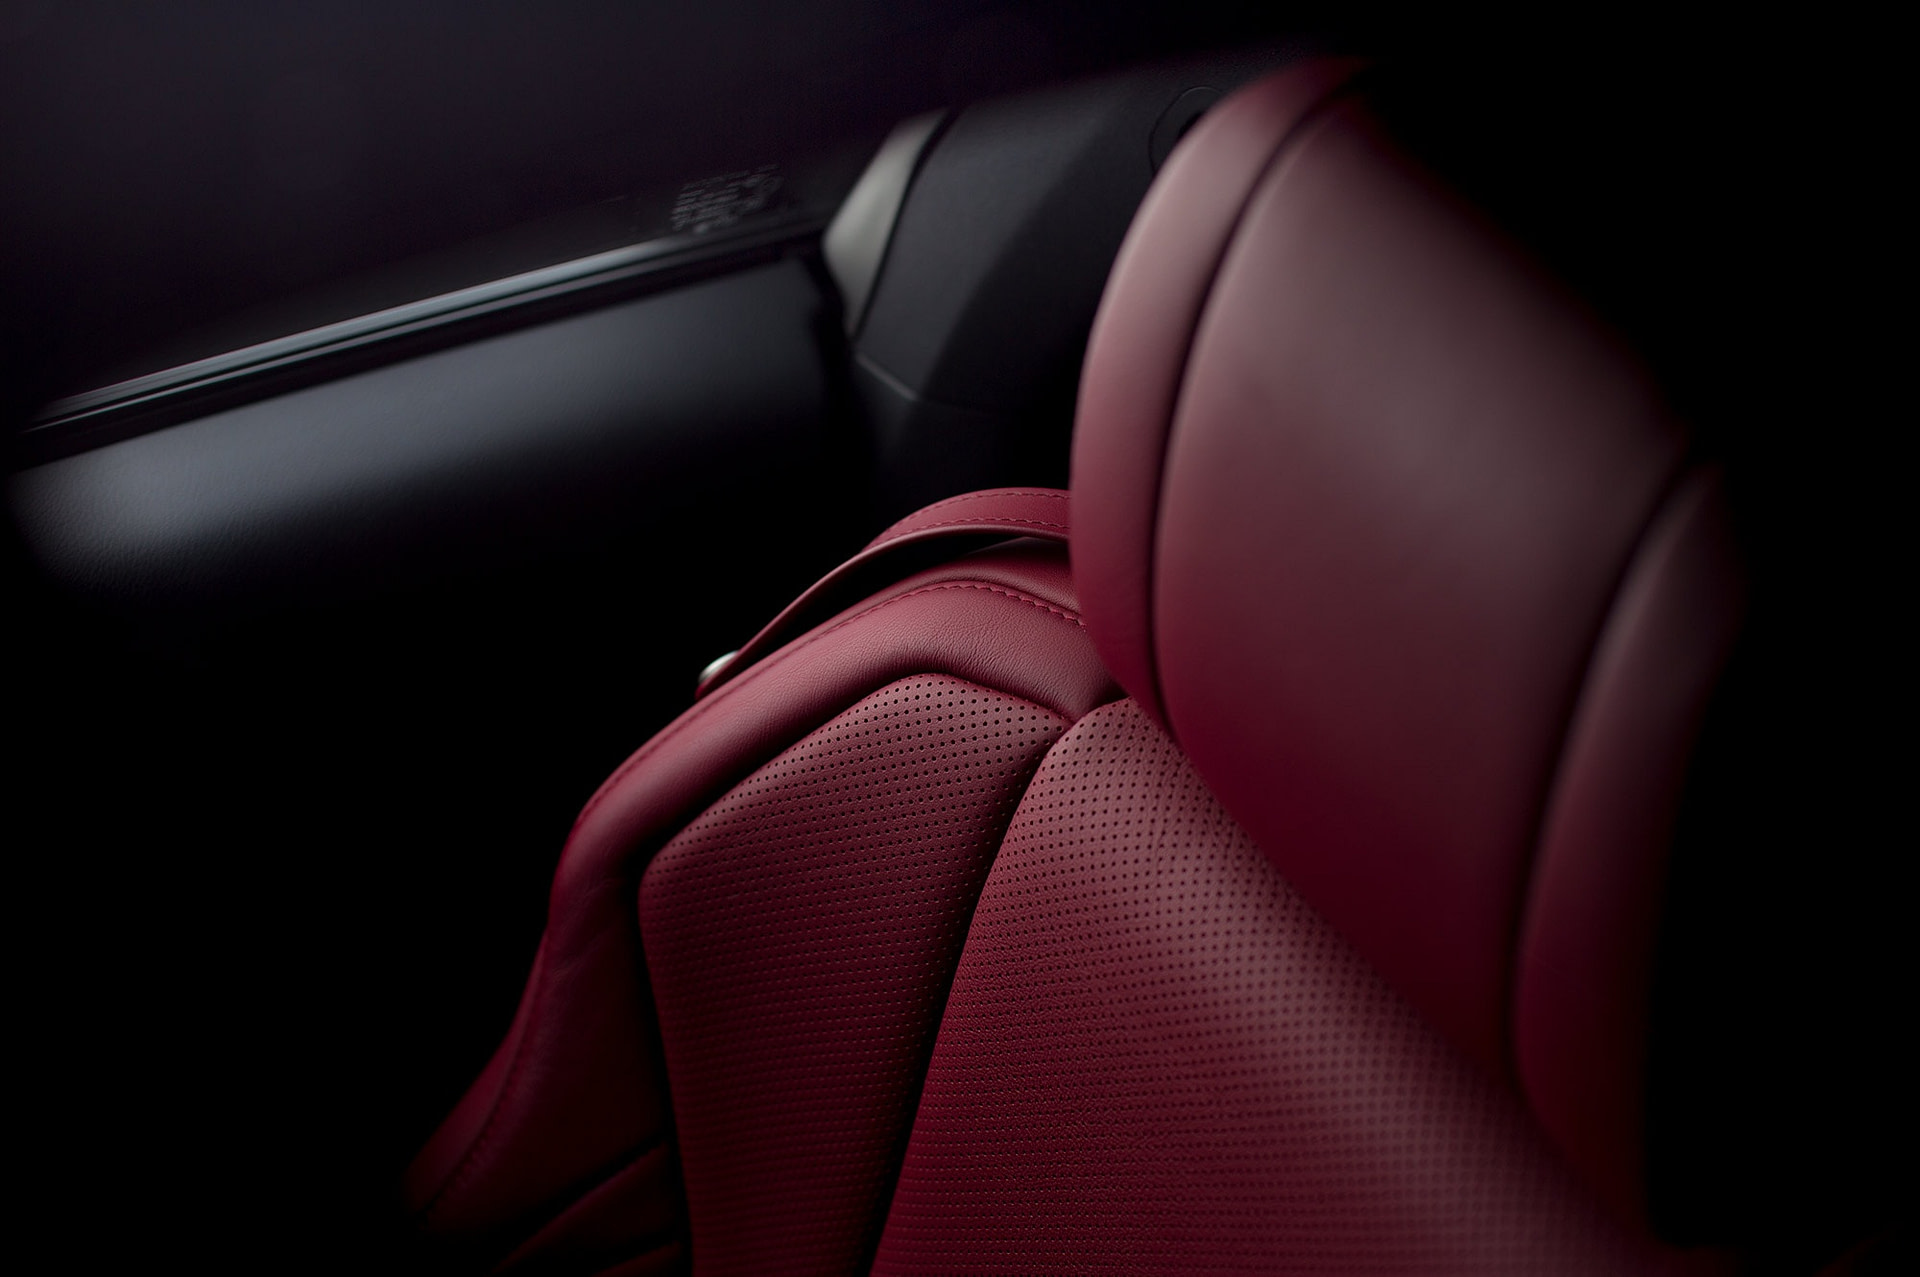 lexus RC F350 sports car with red leather interior photographed by Smith and daniels